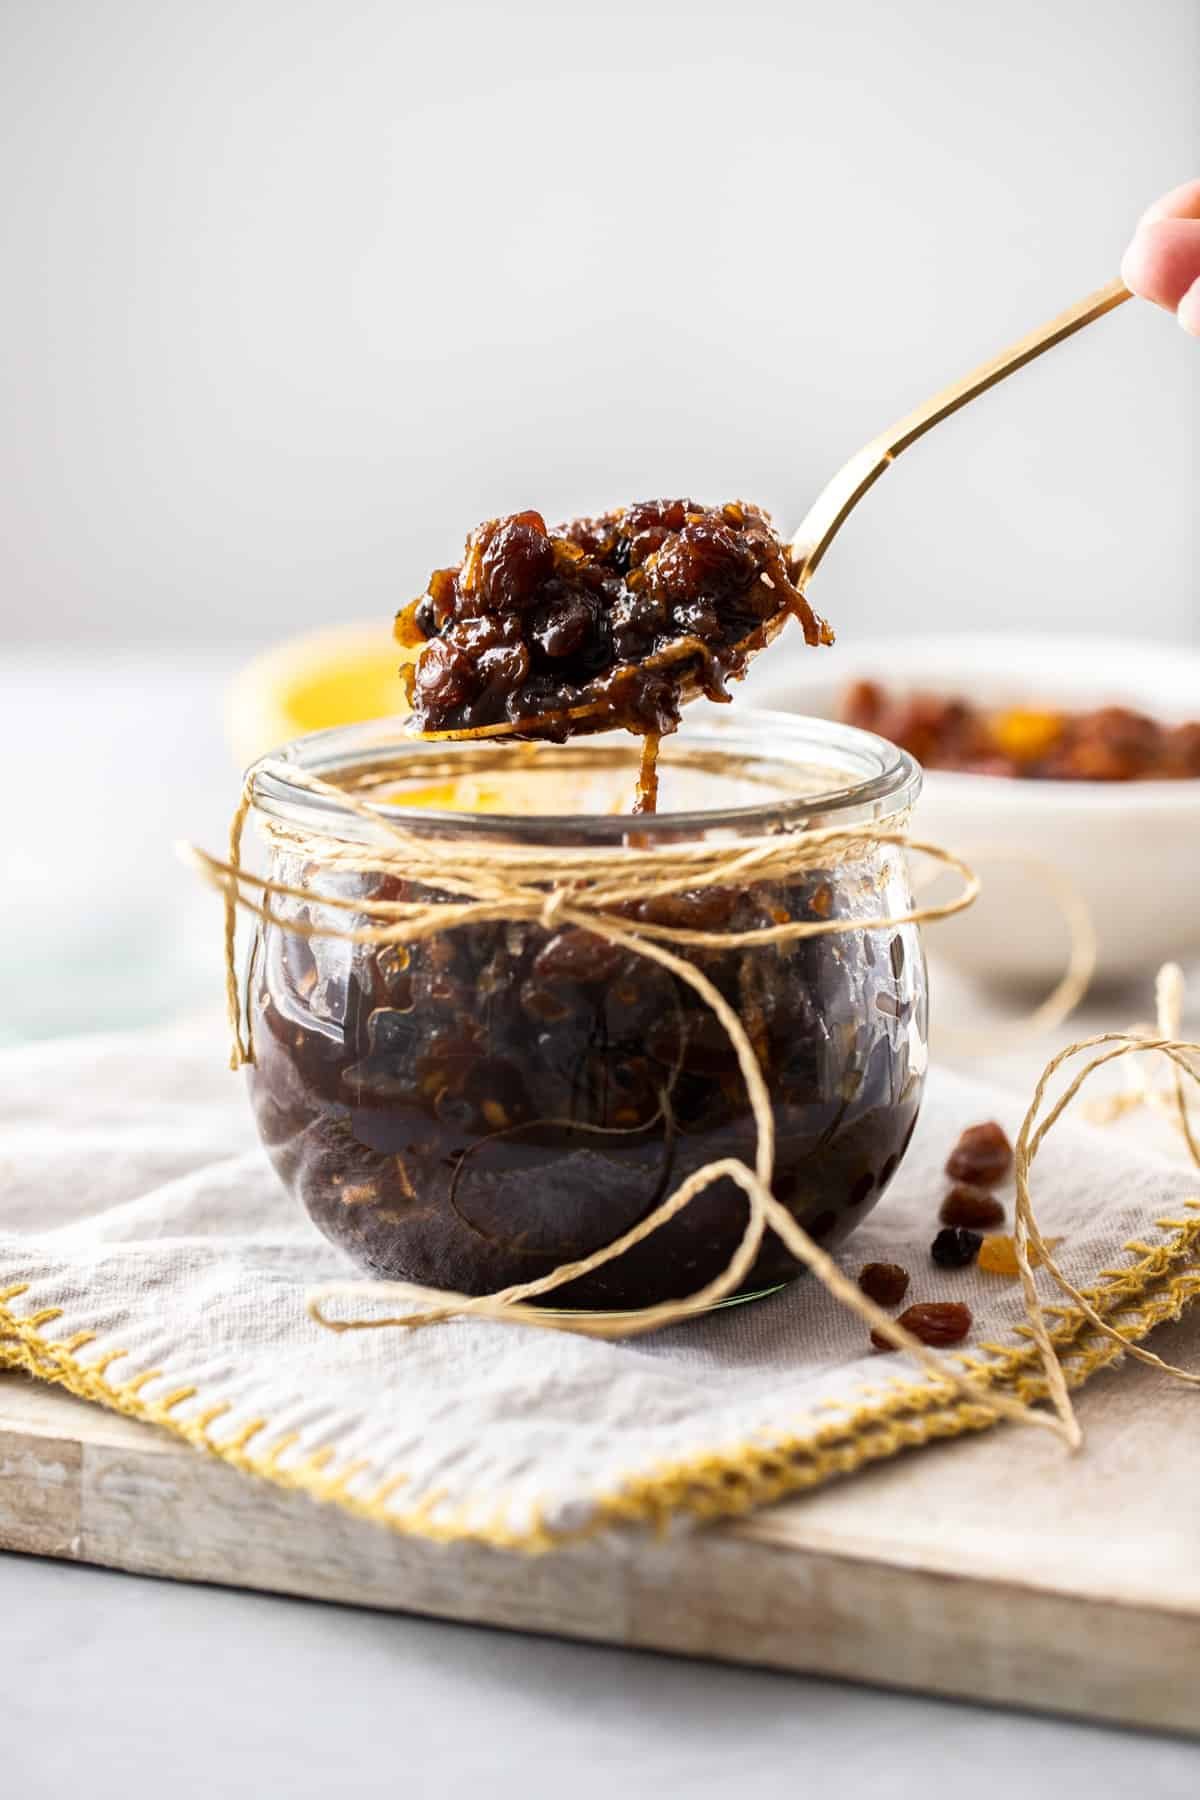 Spoon with fruit mince above jar.